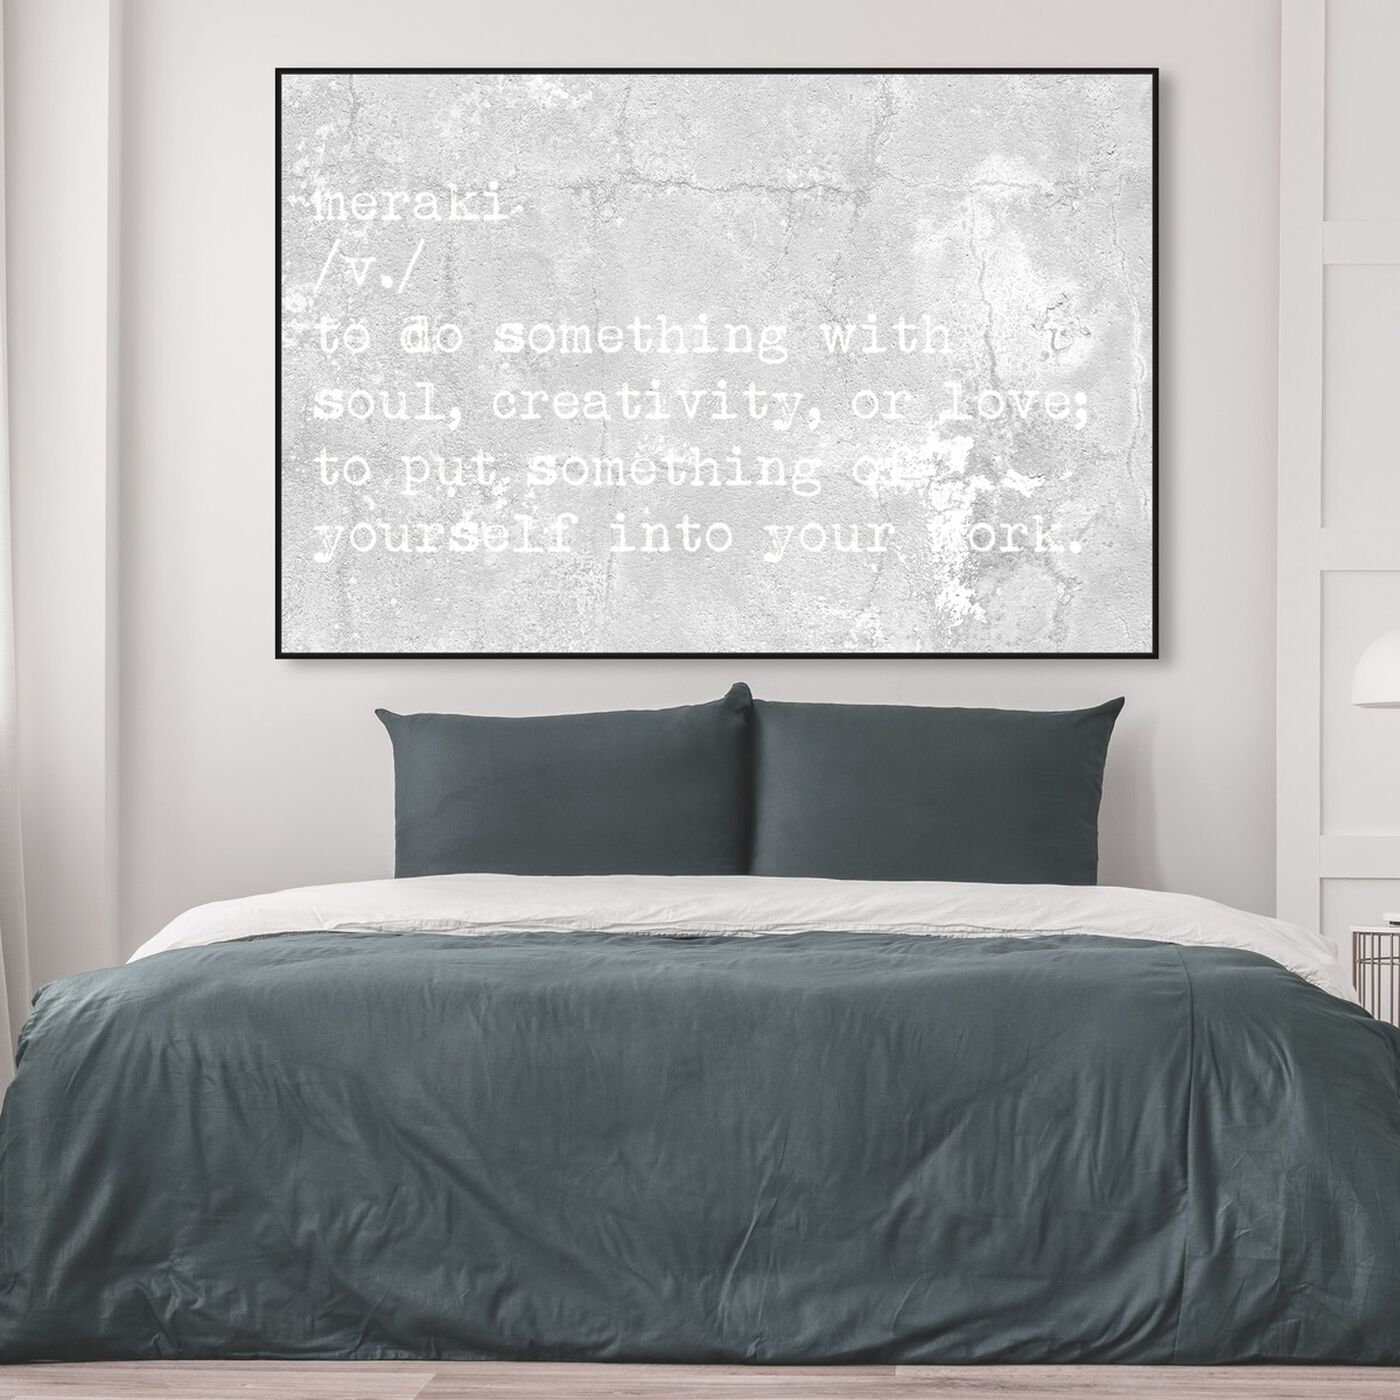 Hanging view of Meraki featuring typography and quotes and motivational quotes and sayings art.